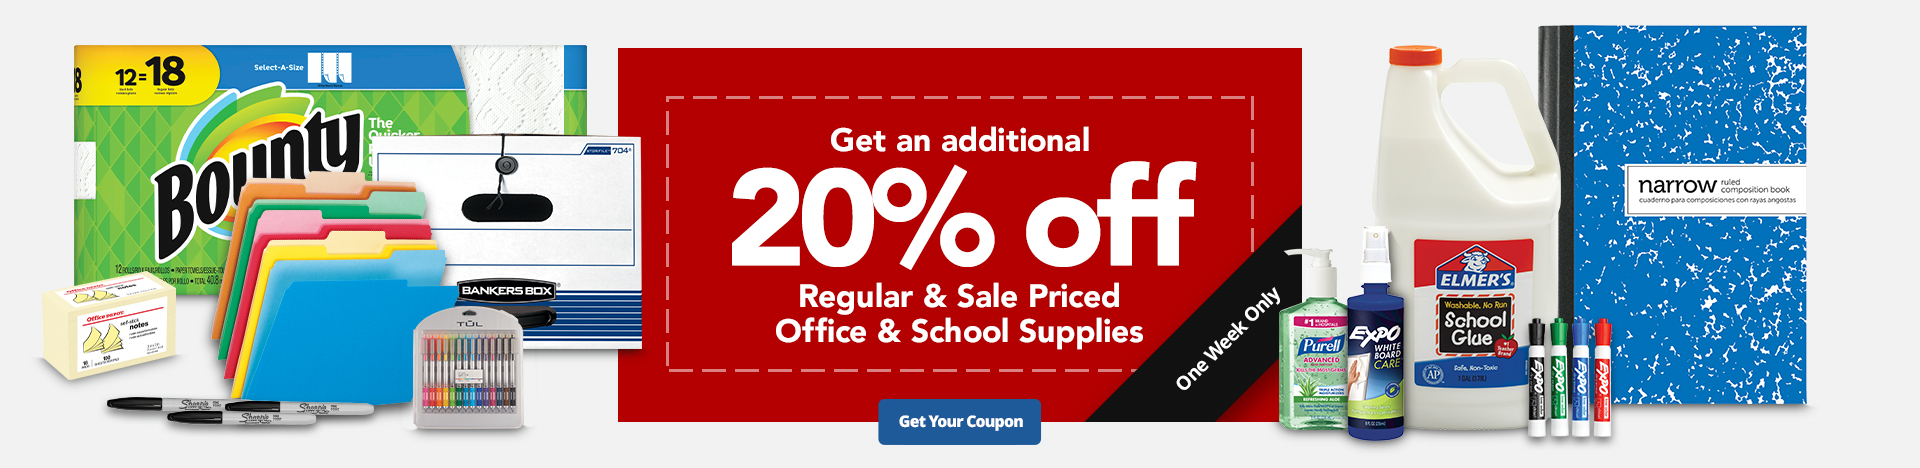 Get An Additional 20% Off Office & School Supplies